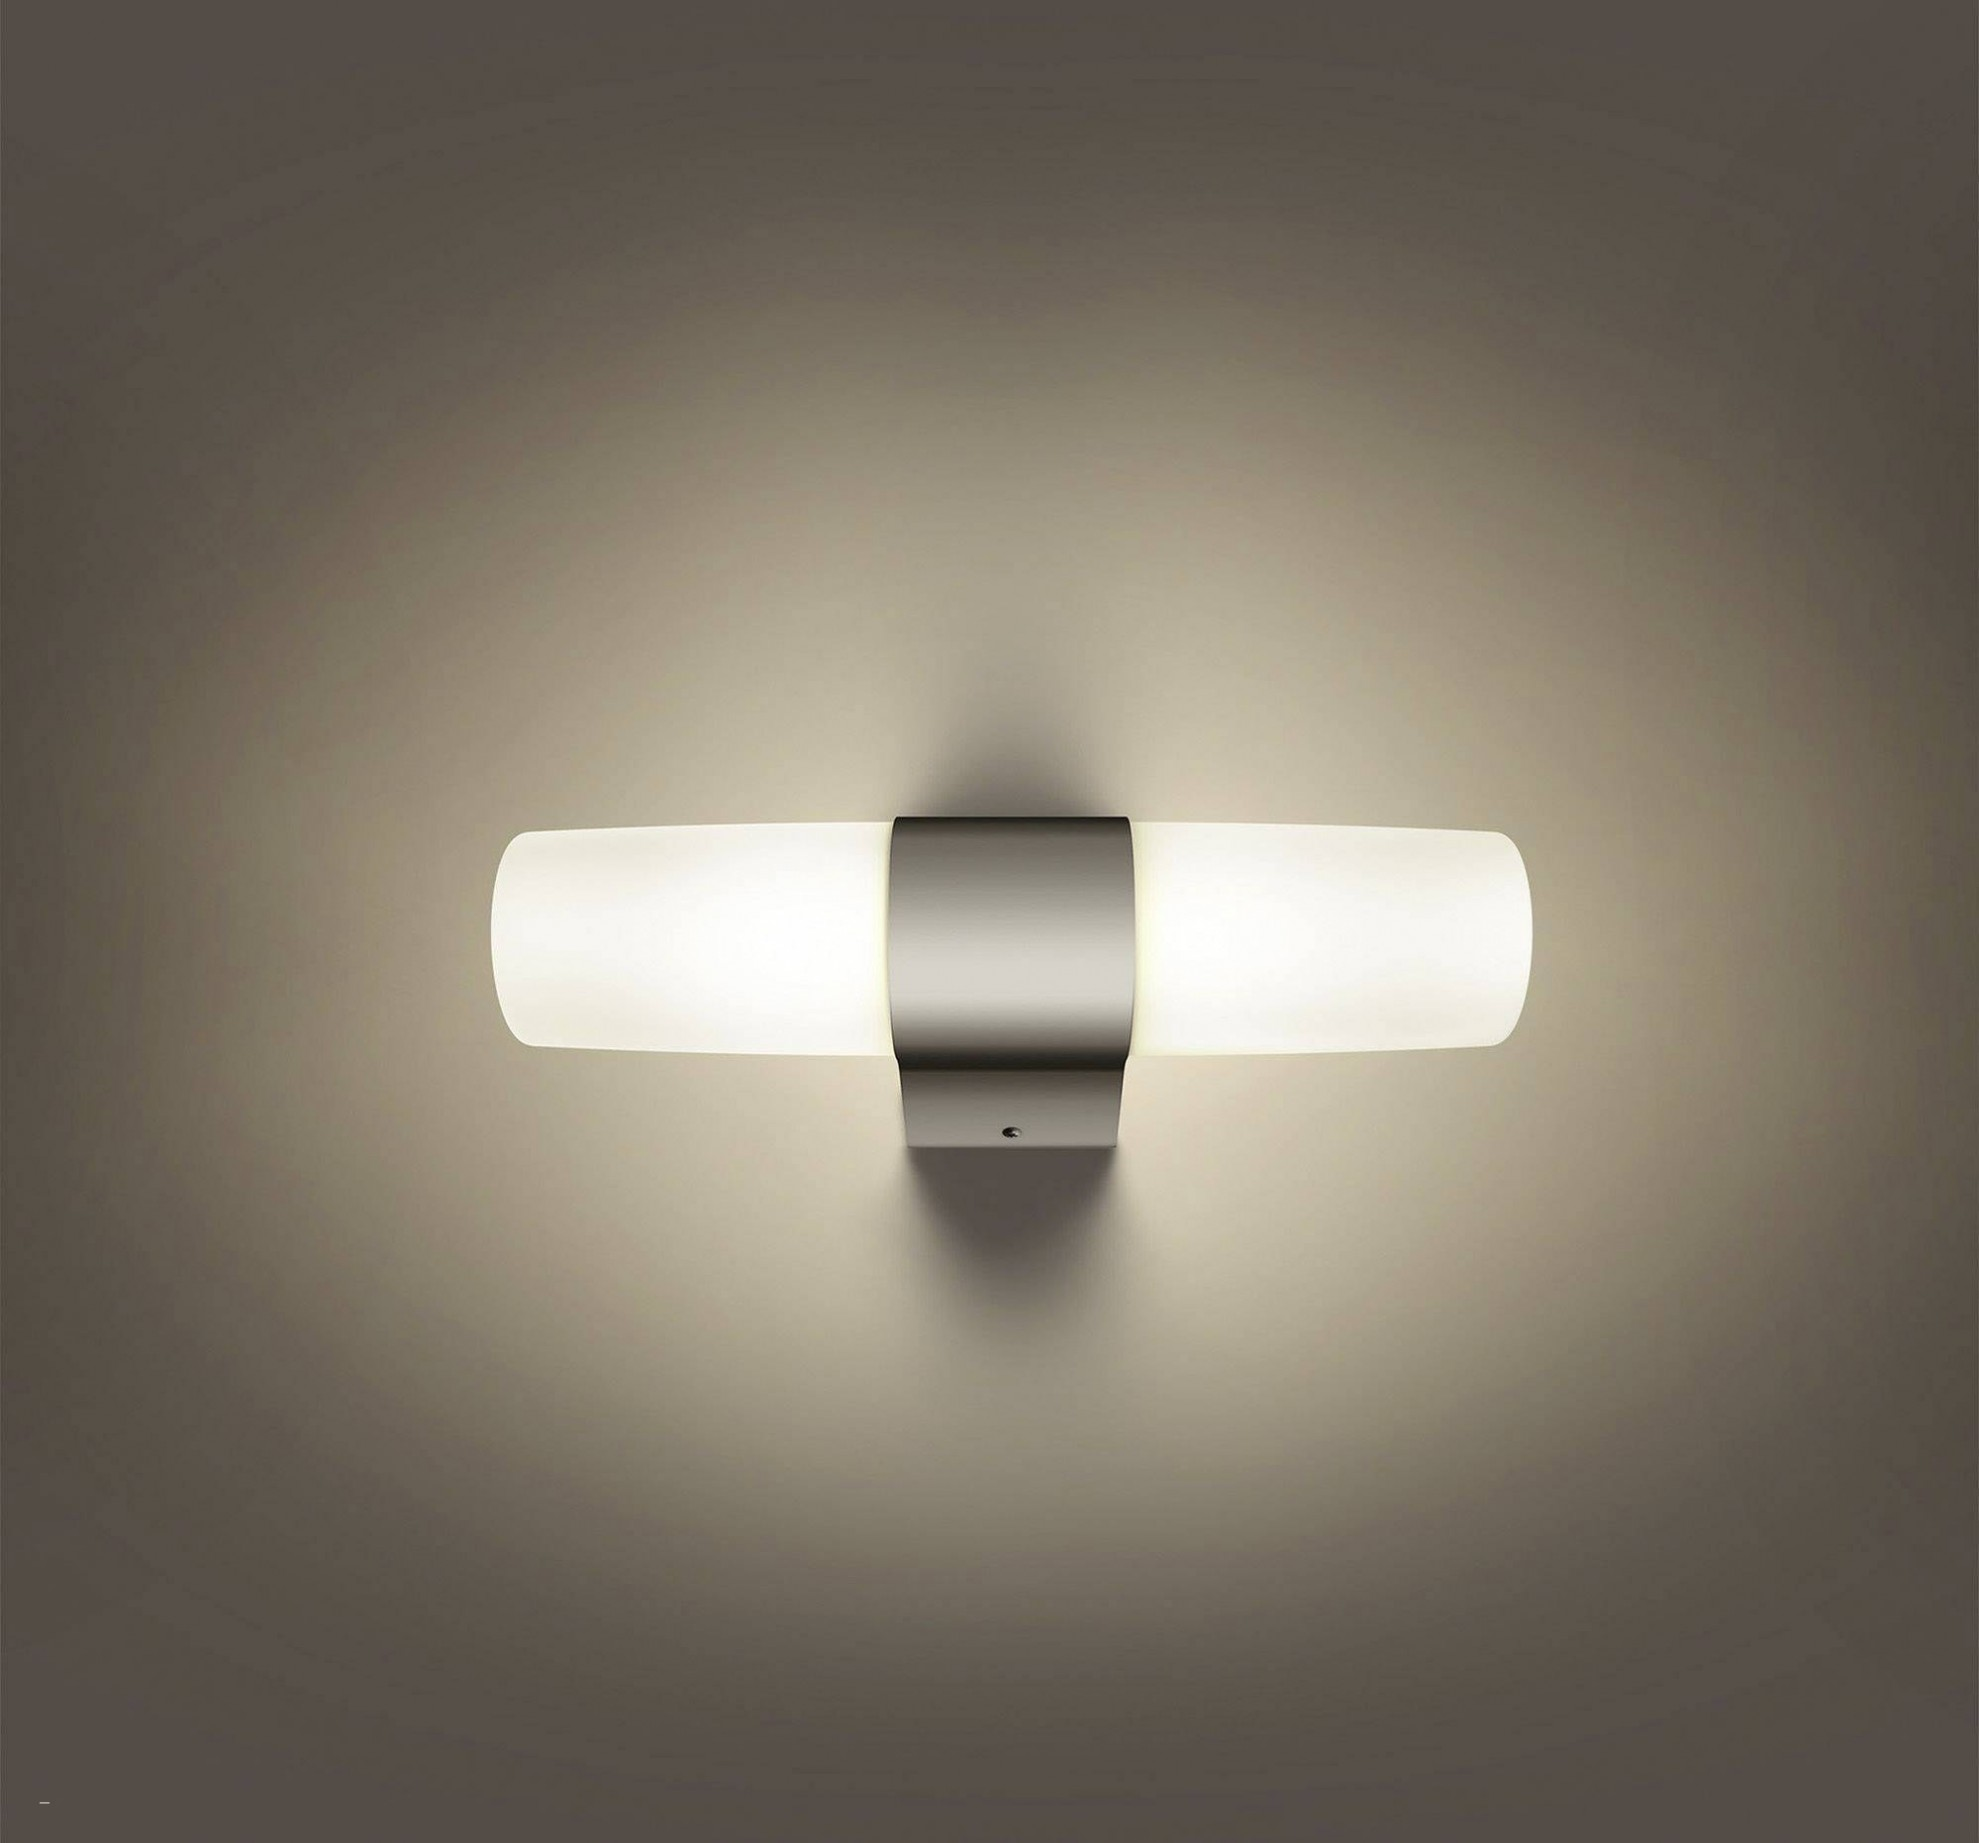 Badezimmer Lampe Wand Led Lampen Fr Badezimmer Lampe Wohnzimmer Design With Lampen